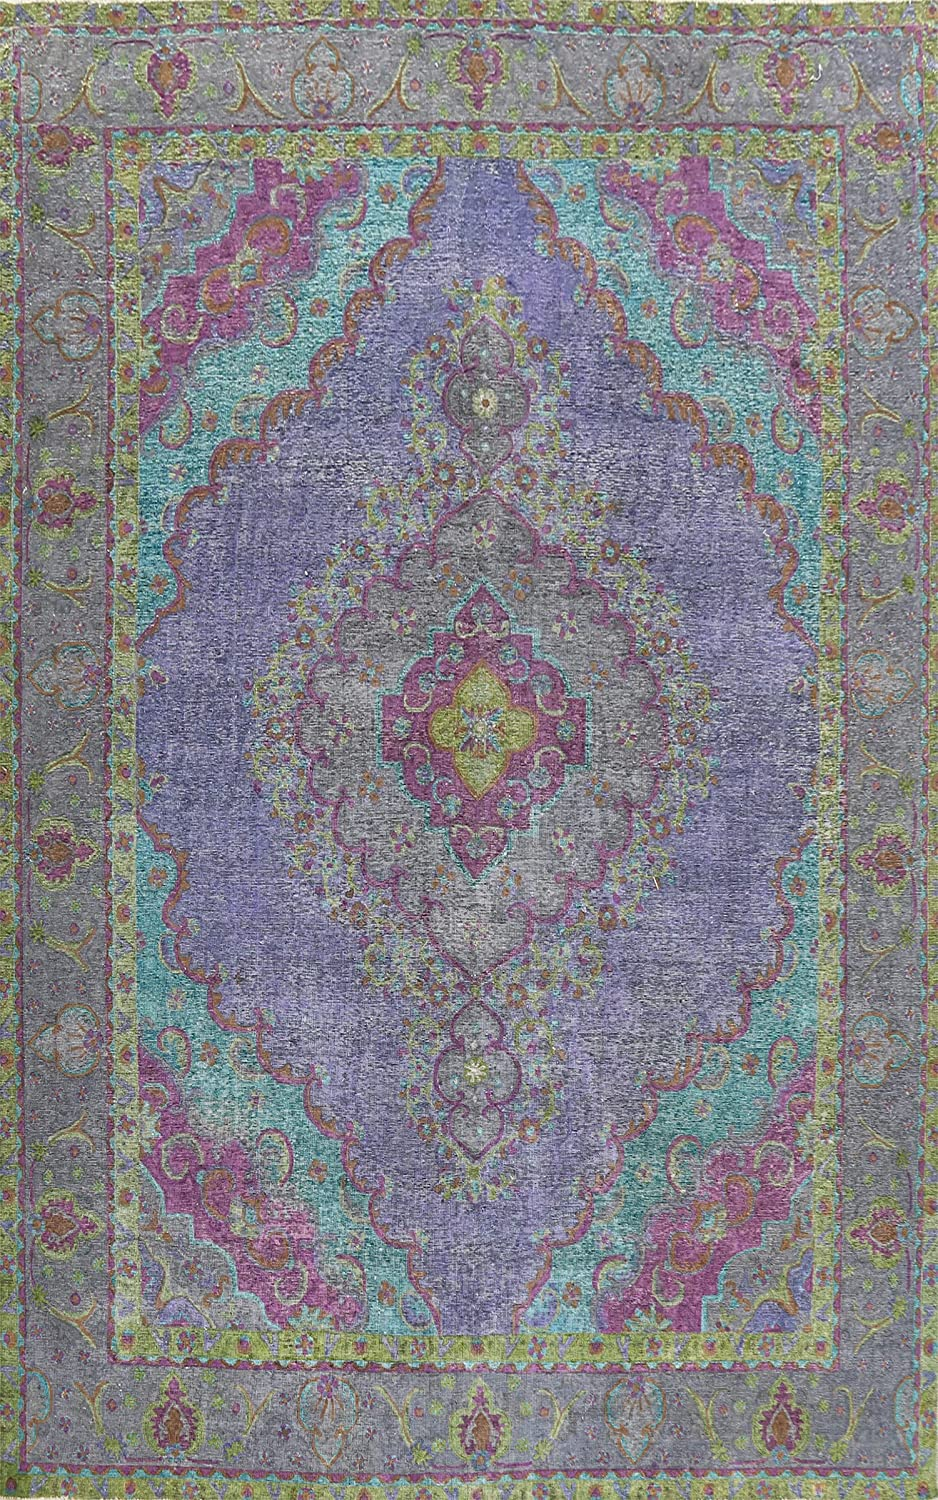 Antique Distressed Blue Tebriz Oriental Rug Area San Jose Mall Special Campaign Wo Hand-Knotted